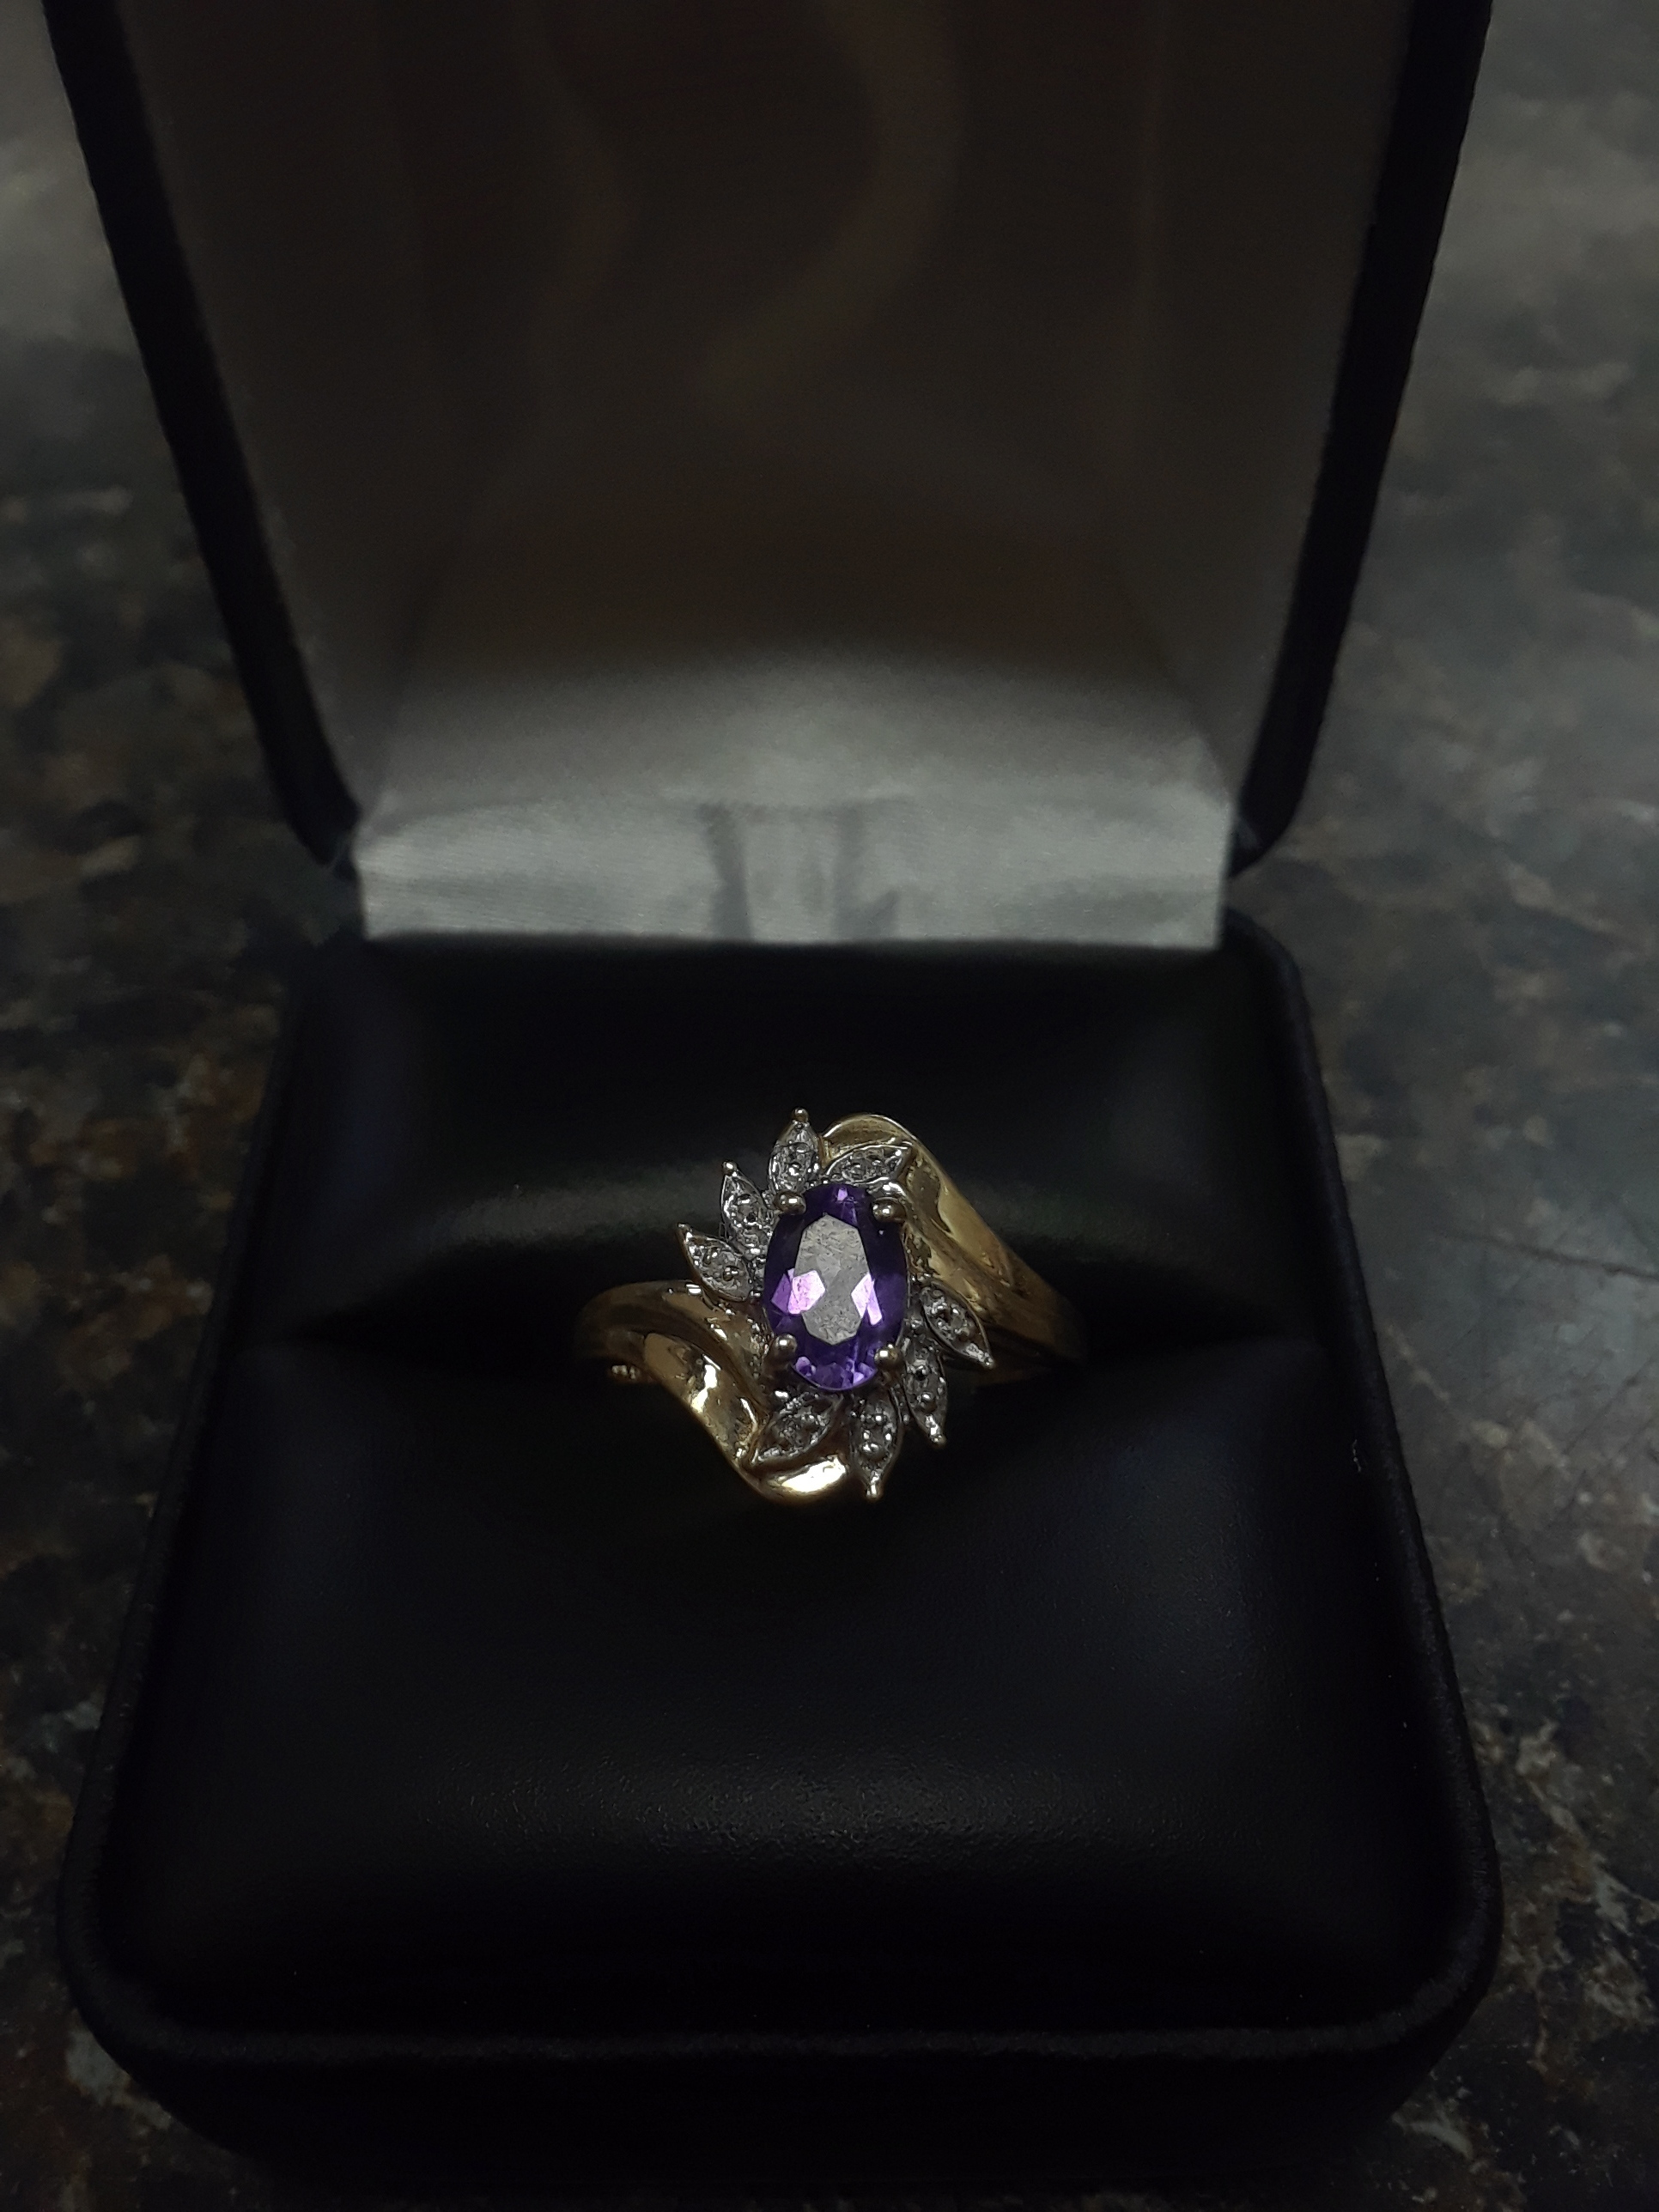 10KT YELLOW GOLD RING WITH A PURPLE OVAL STONE SURROUNDED BY TINY DIAMOND CHIPS. SIZE: 7